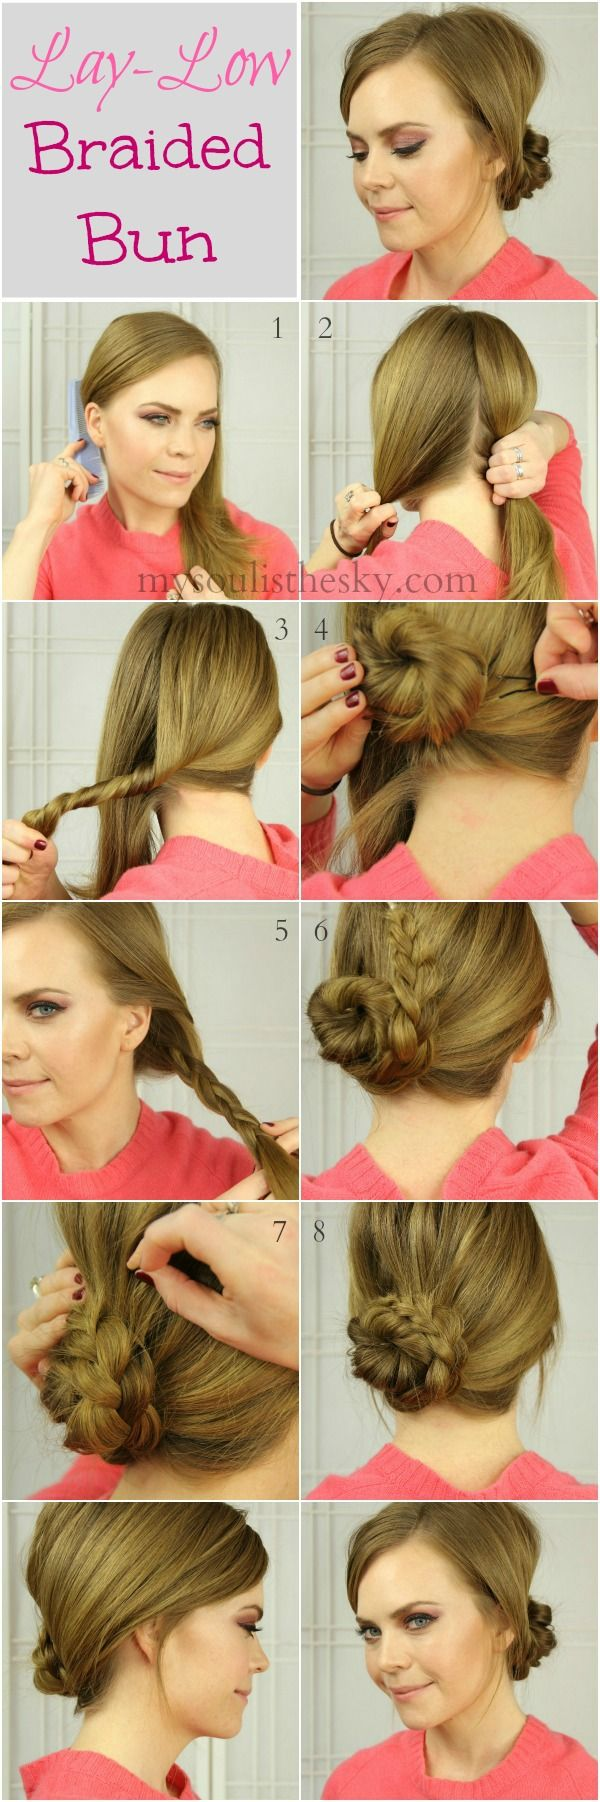 """Lay-Low"" Braided Bun"